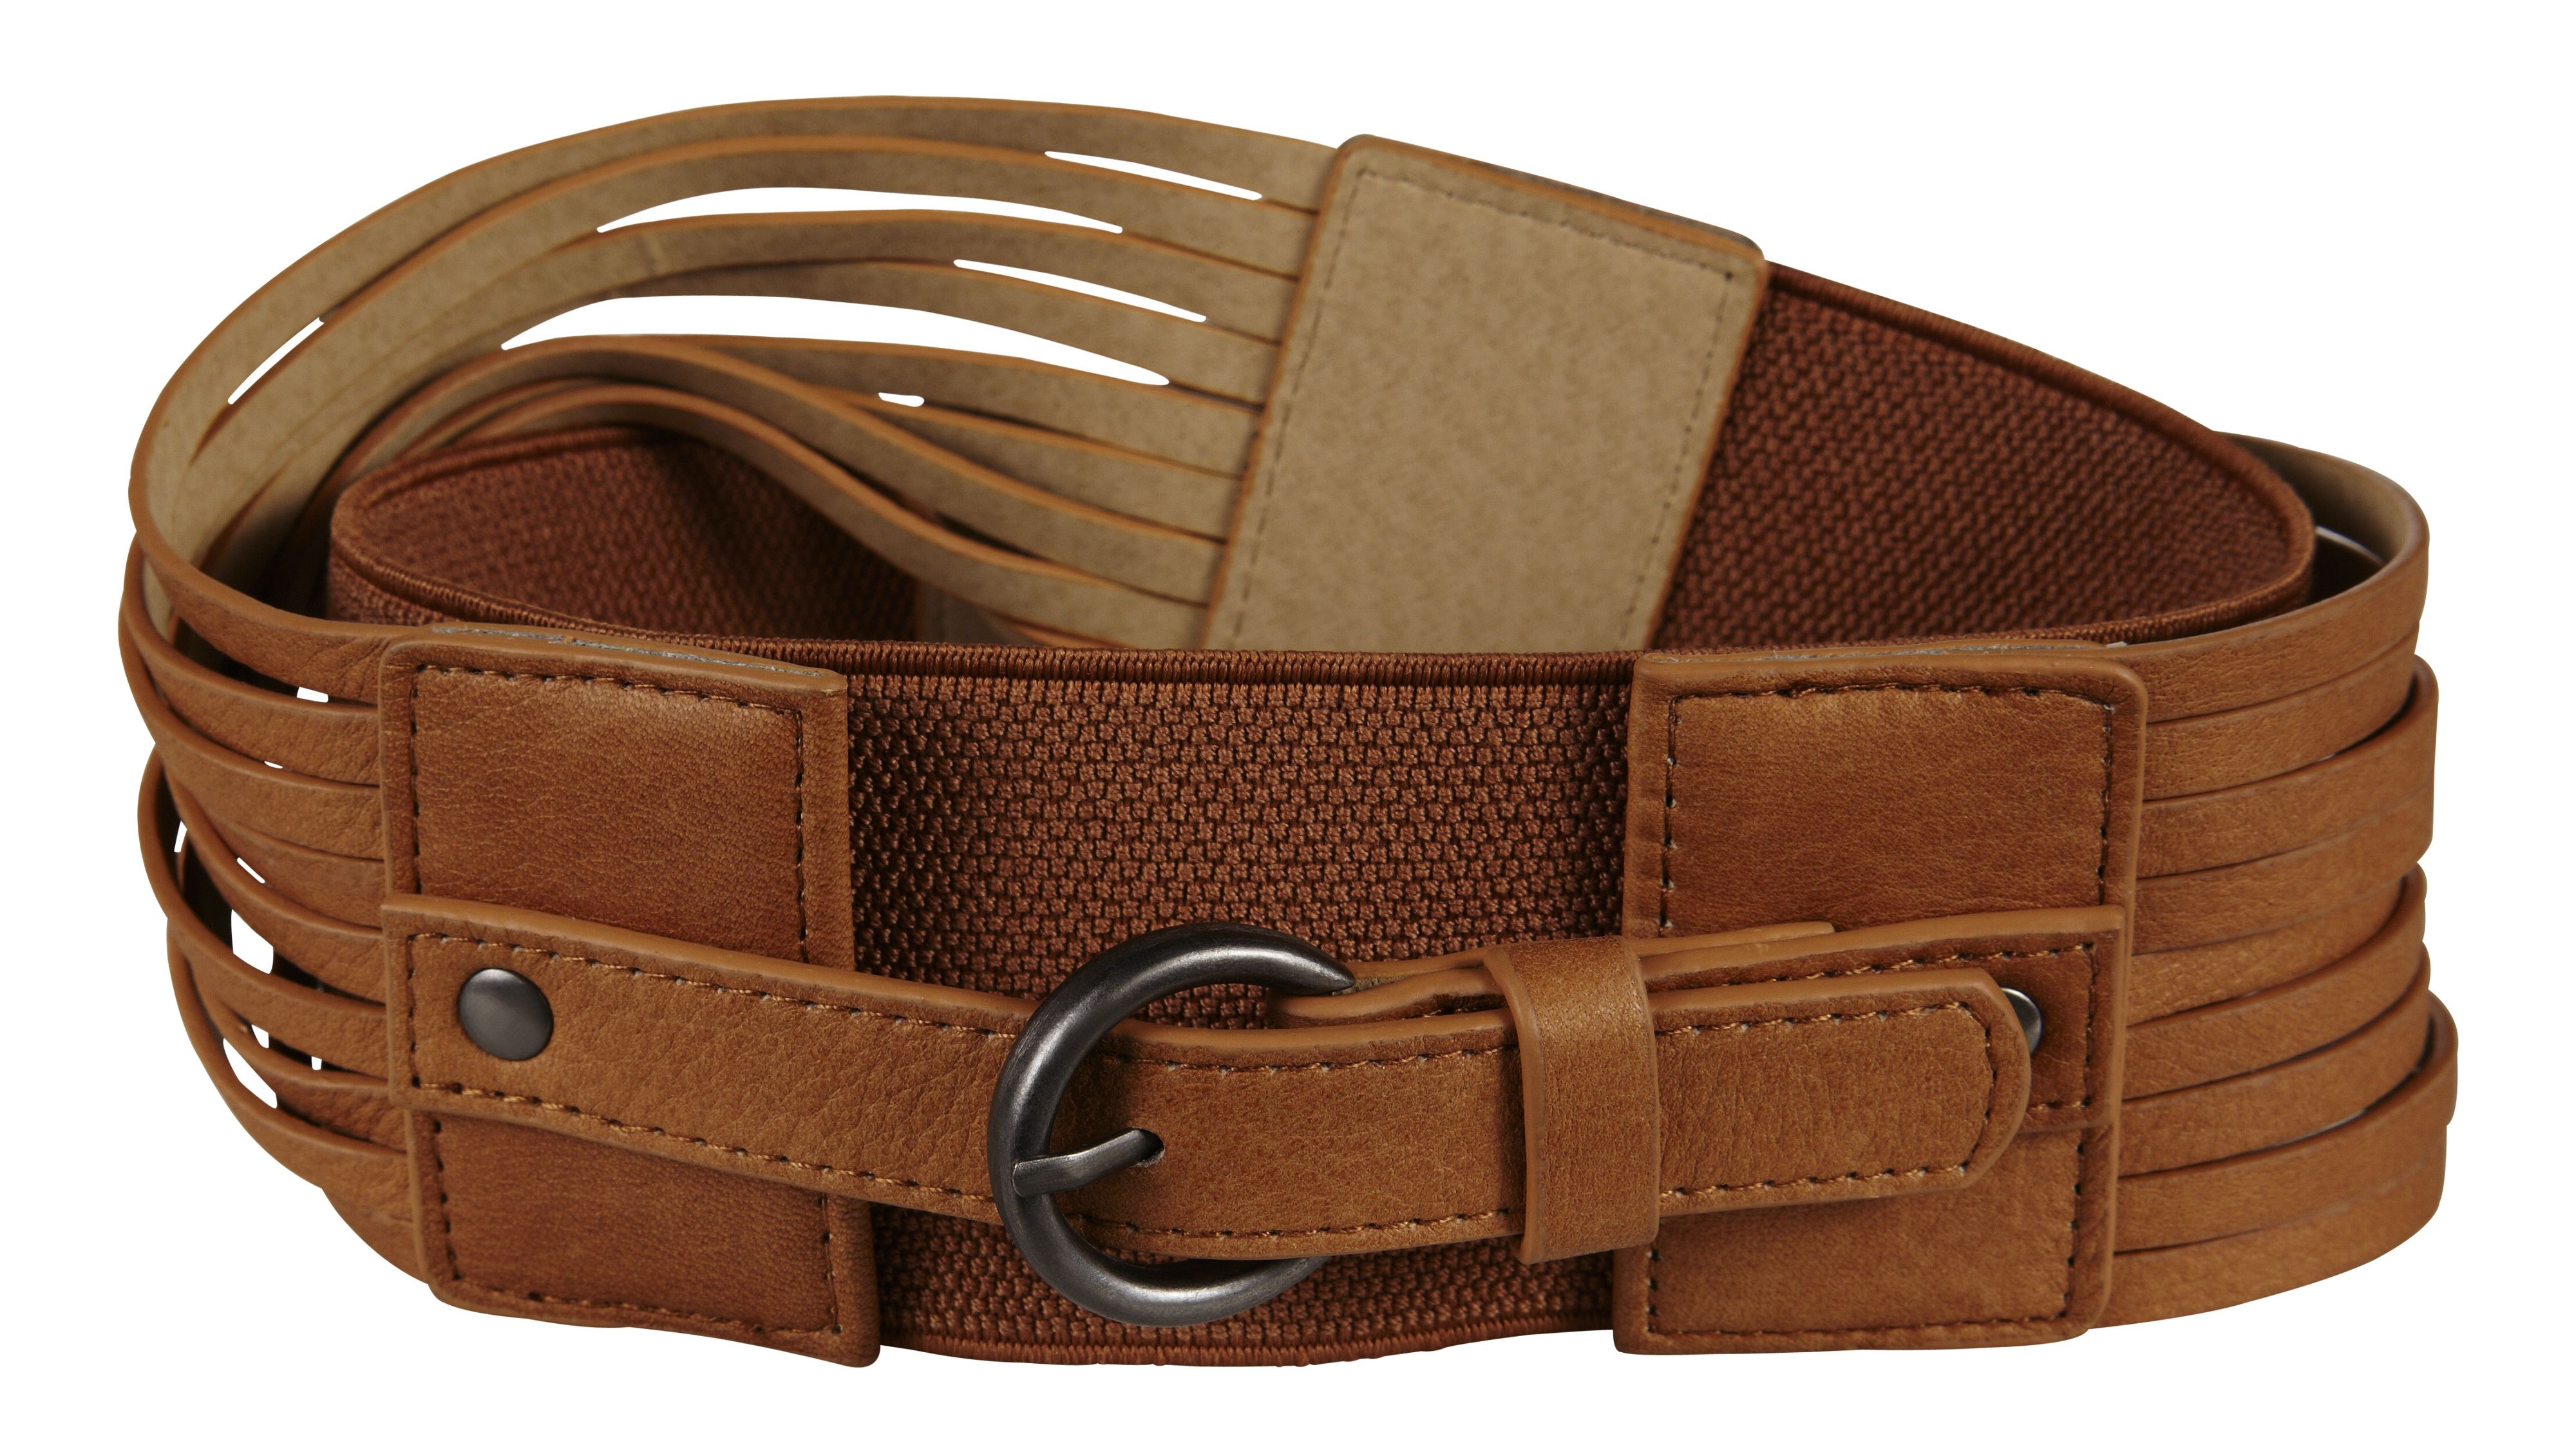 Large elastic back belt